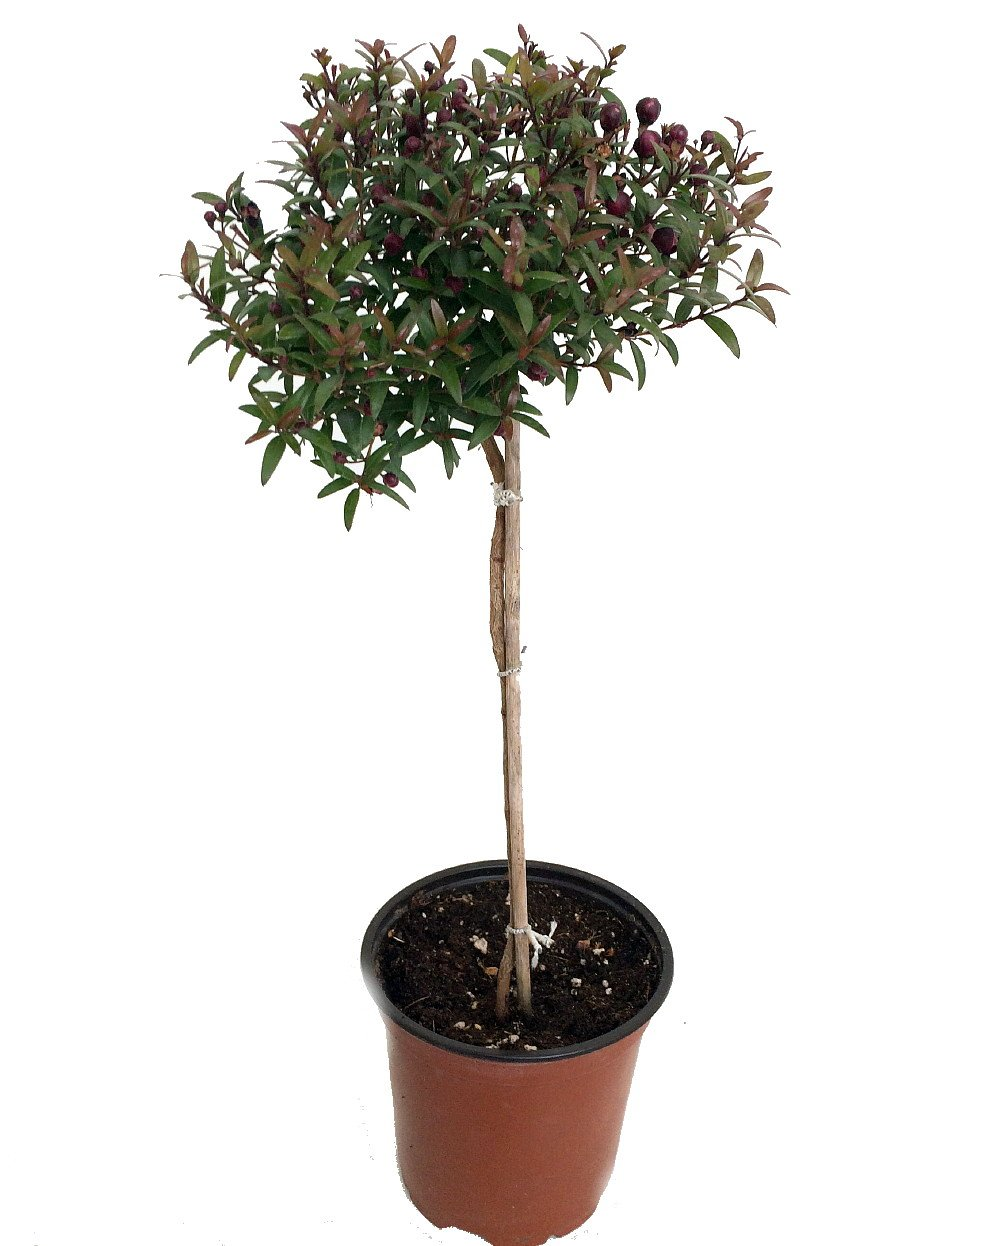 Biblical Myrtle Herb Plant - Myrtus - Ancient Herb - 4.5'' Pot - Topiary by Hirt's Gardens (Image #1)